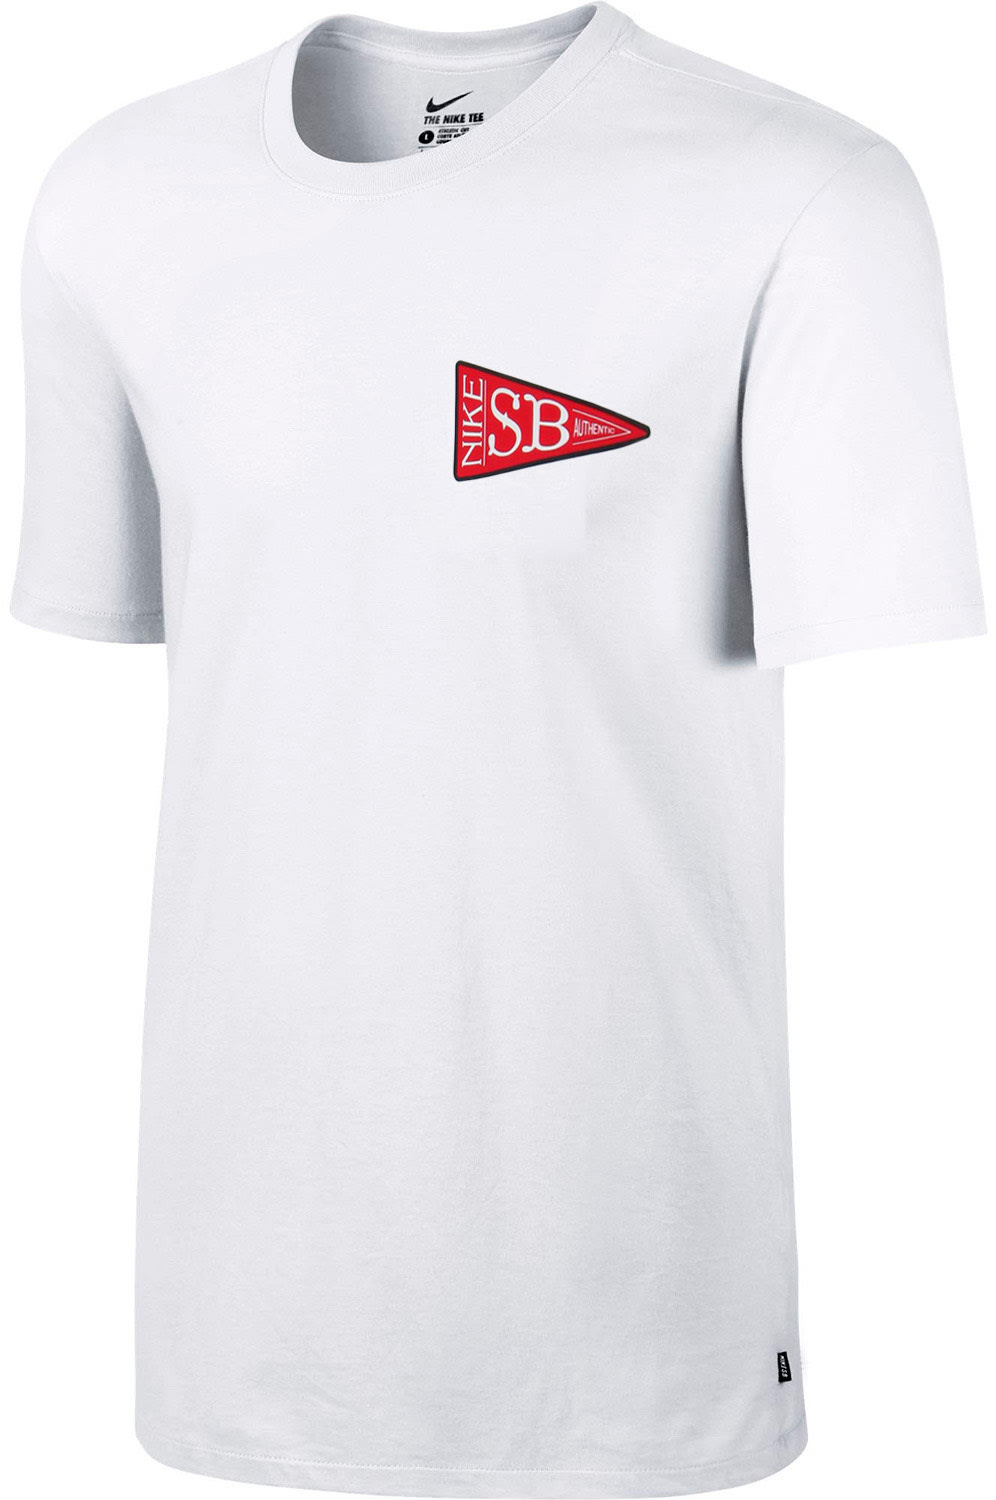 On sale nike sb dri fit sticker t shirt up to 50 off for Dri fit shirts on sale